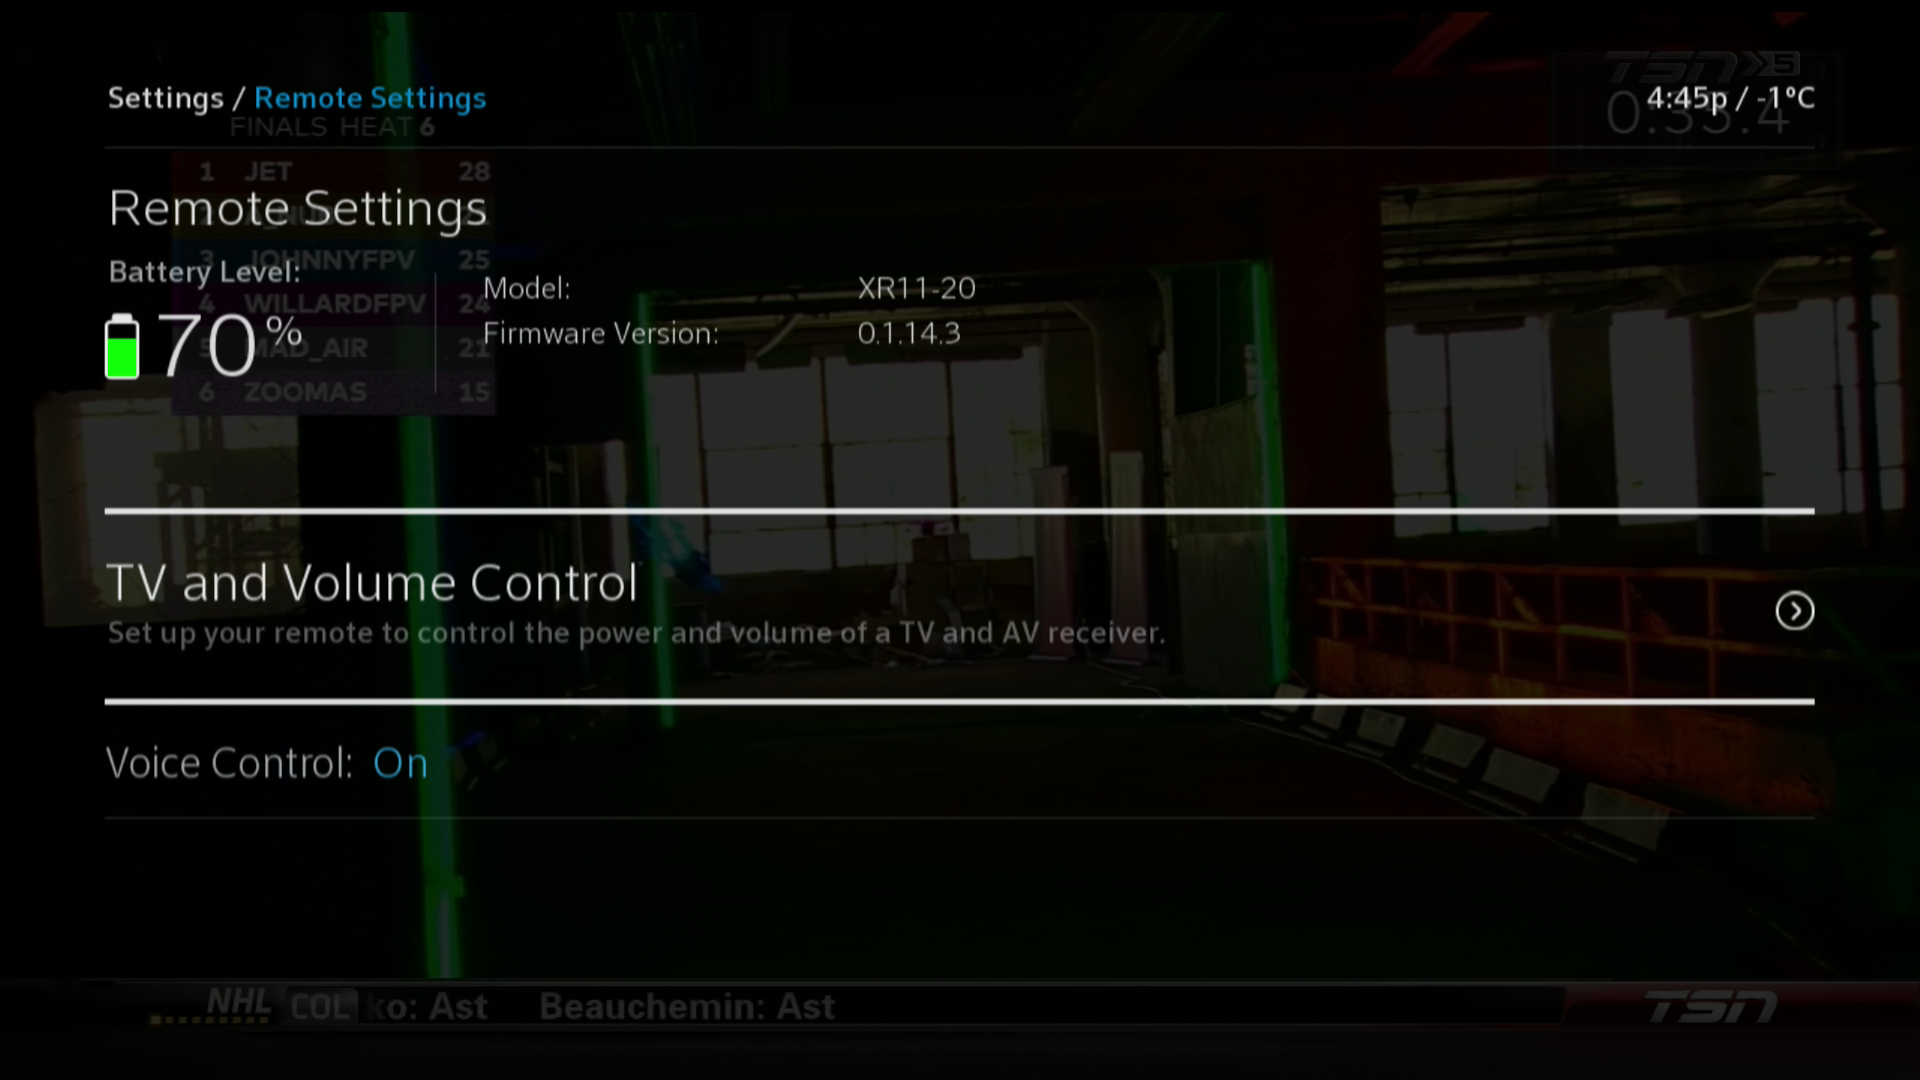 BlueCurve TV Remote Settings